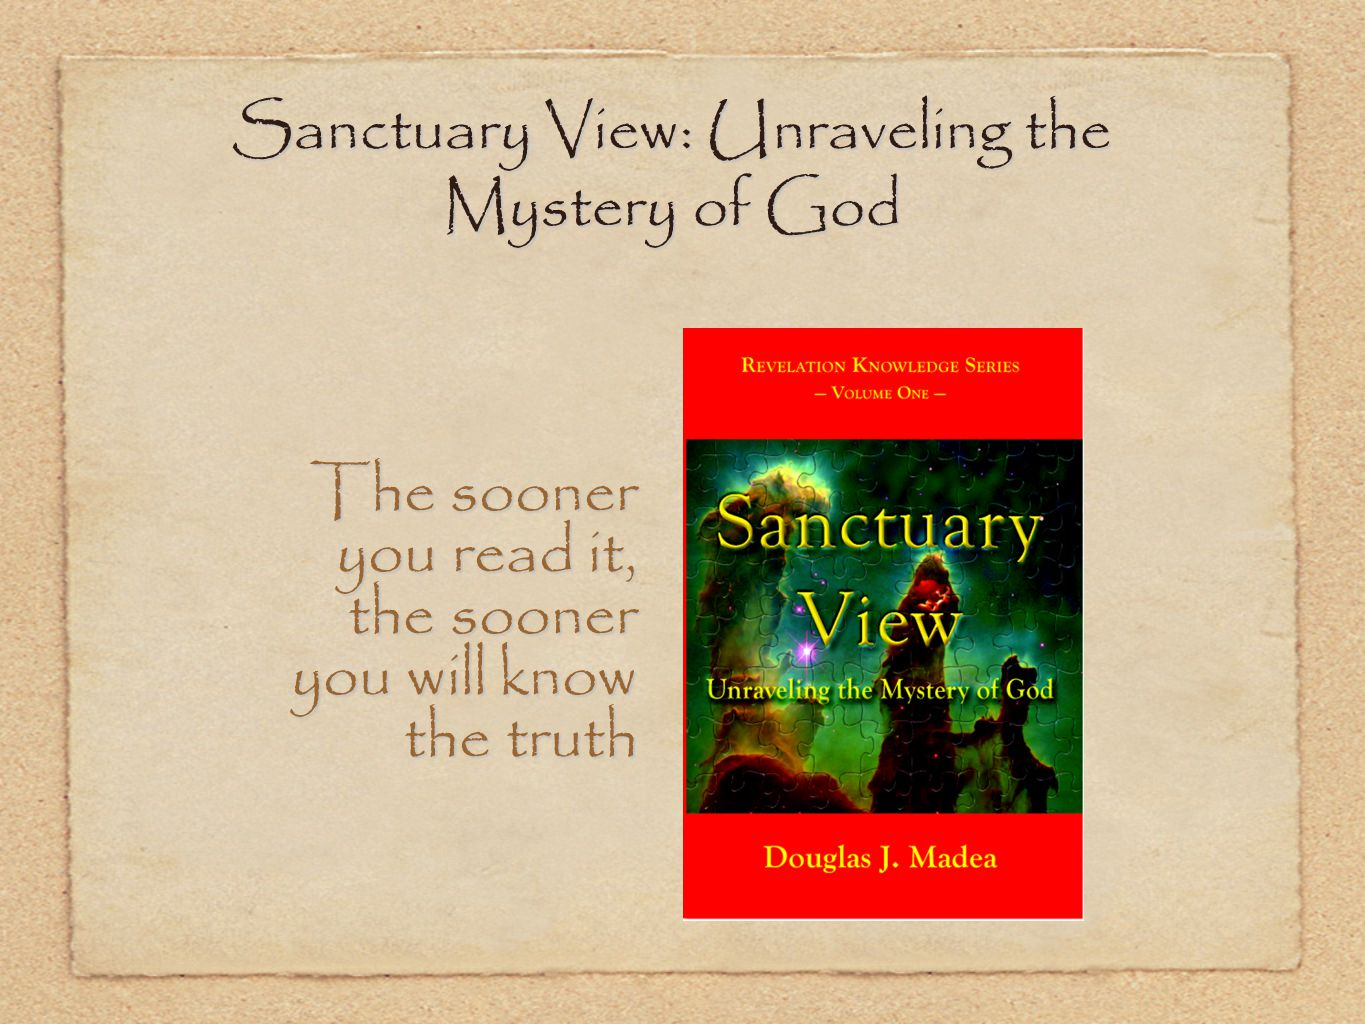 Sanctuary View: Unraveling the Mystery of God The sooner you read it, the sooner you will know the truth